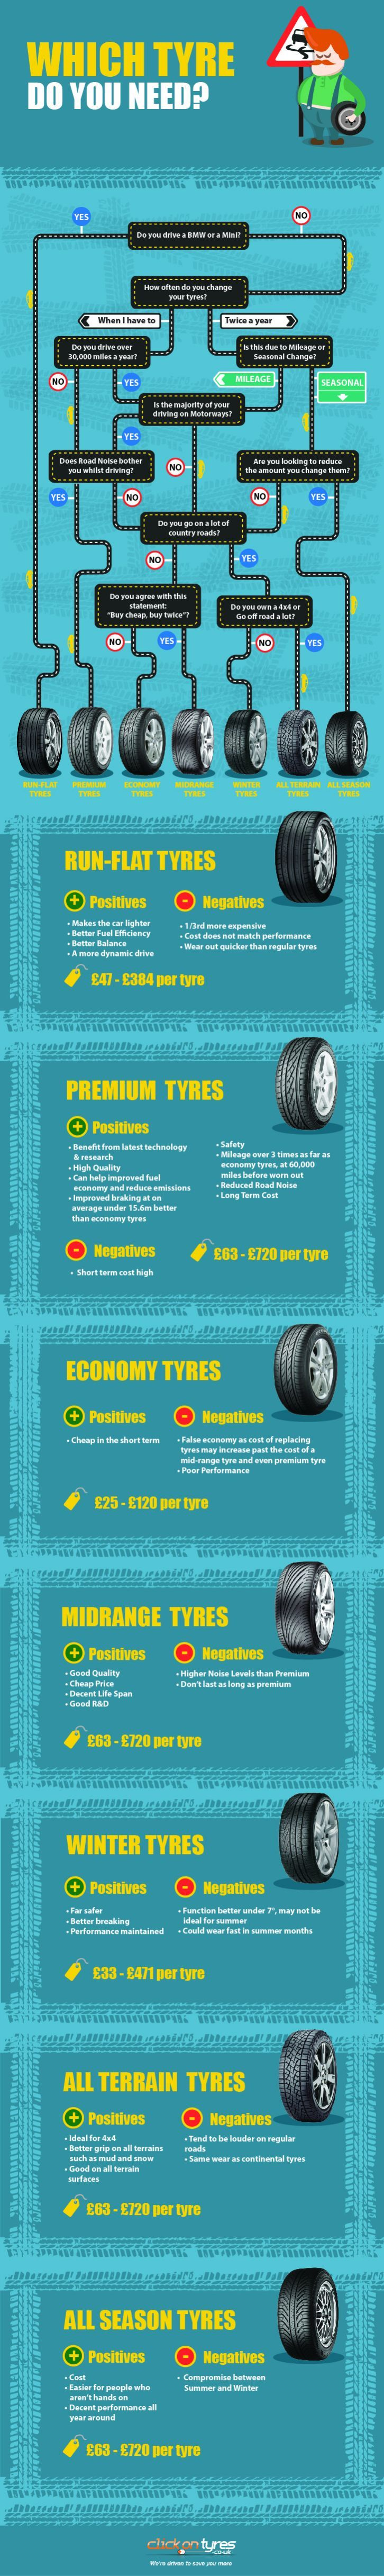 Visualistan: What Type of Tyre do you Really Need?   #infographic #Tyre #Cars…